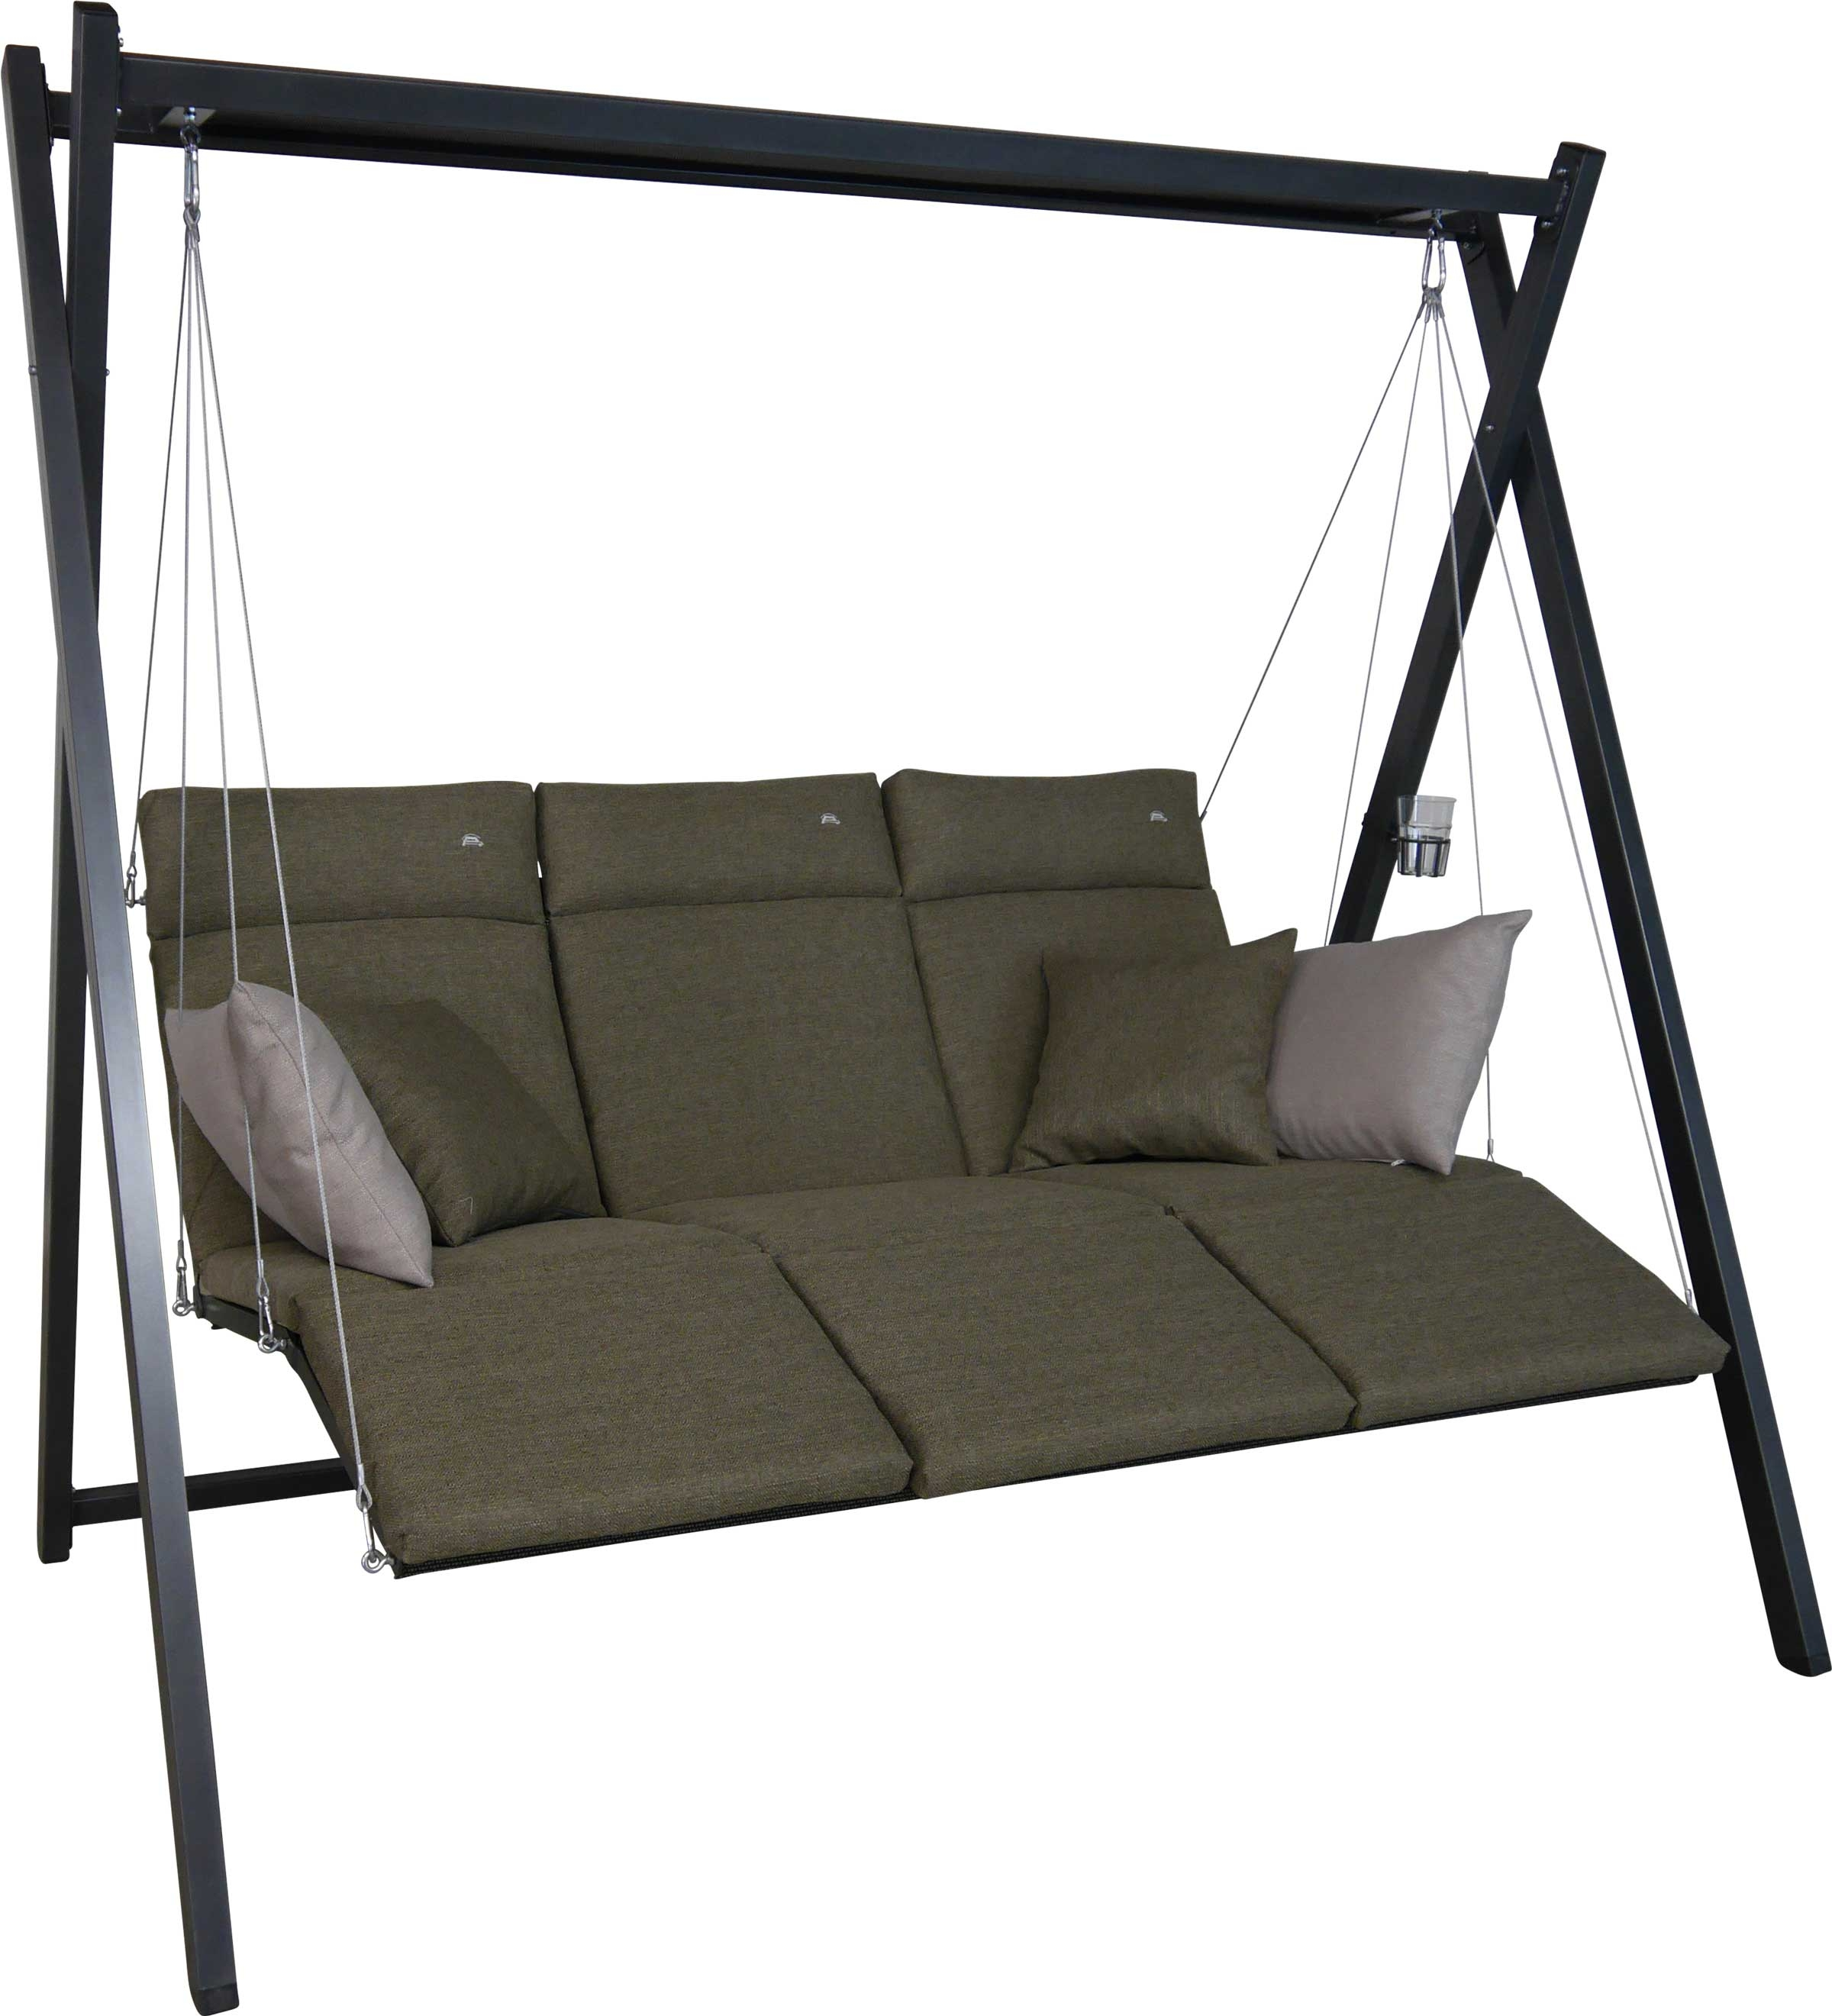 Angerer Hollywoodschaukel Relax Smart olive - 3-Sitzer